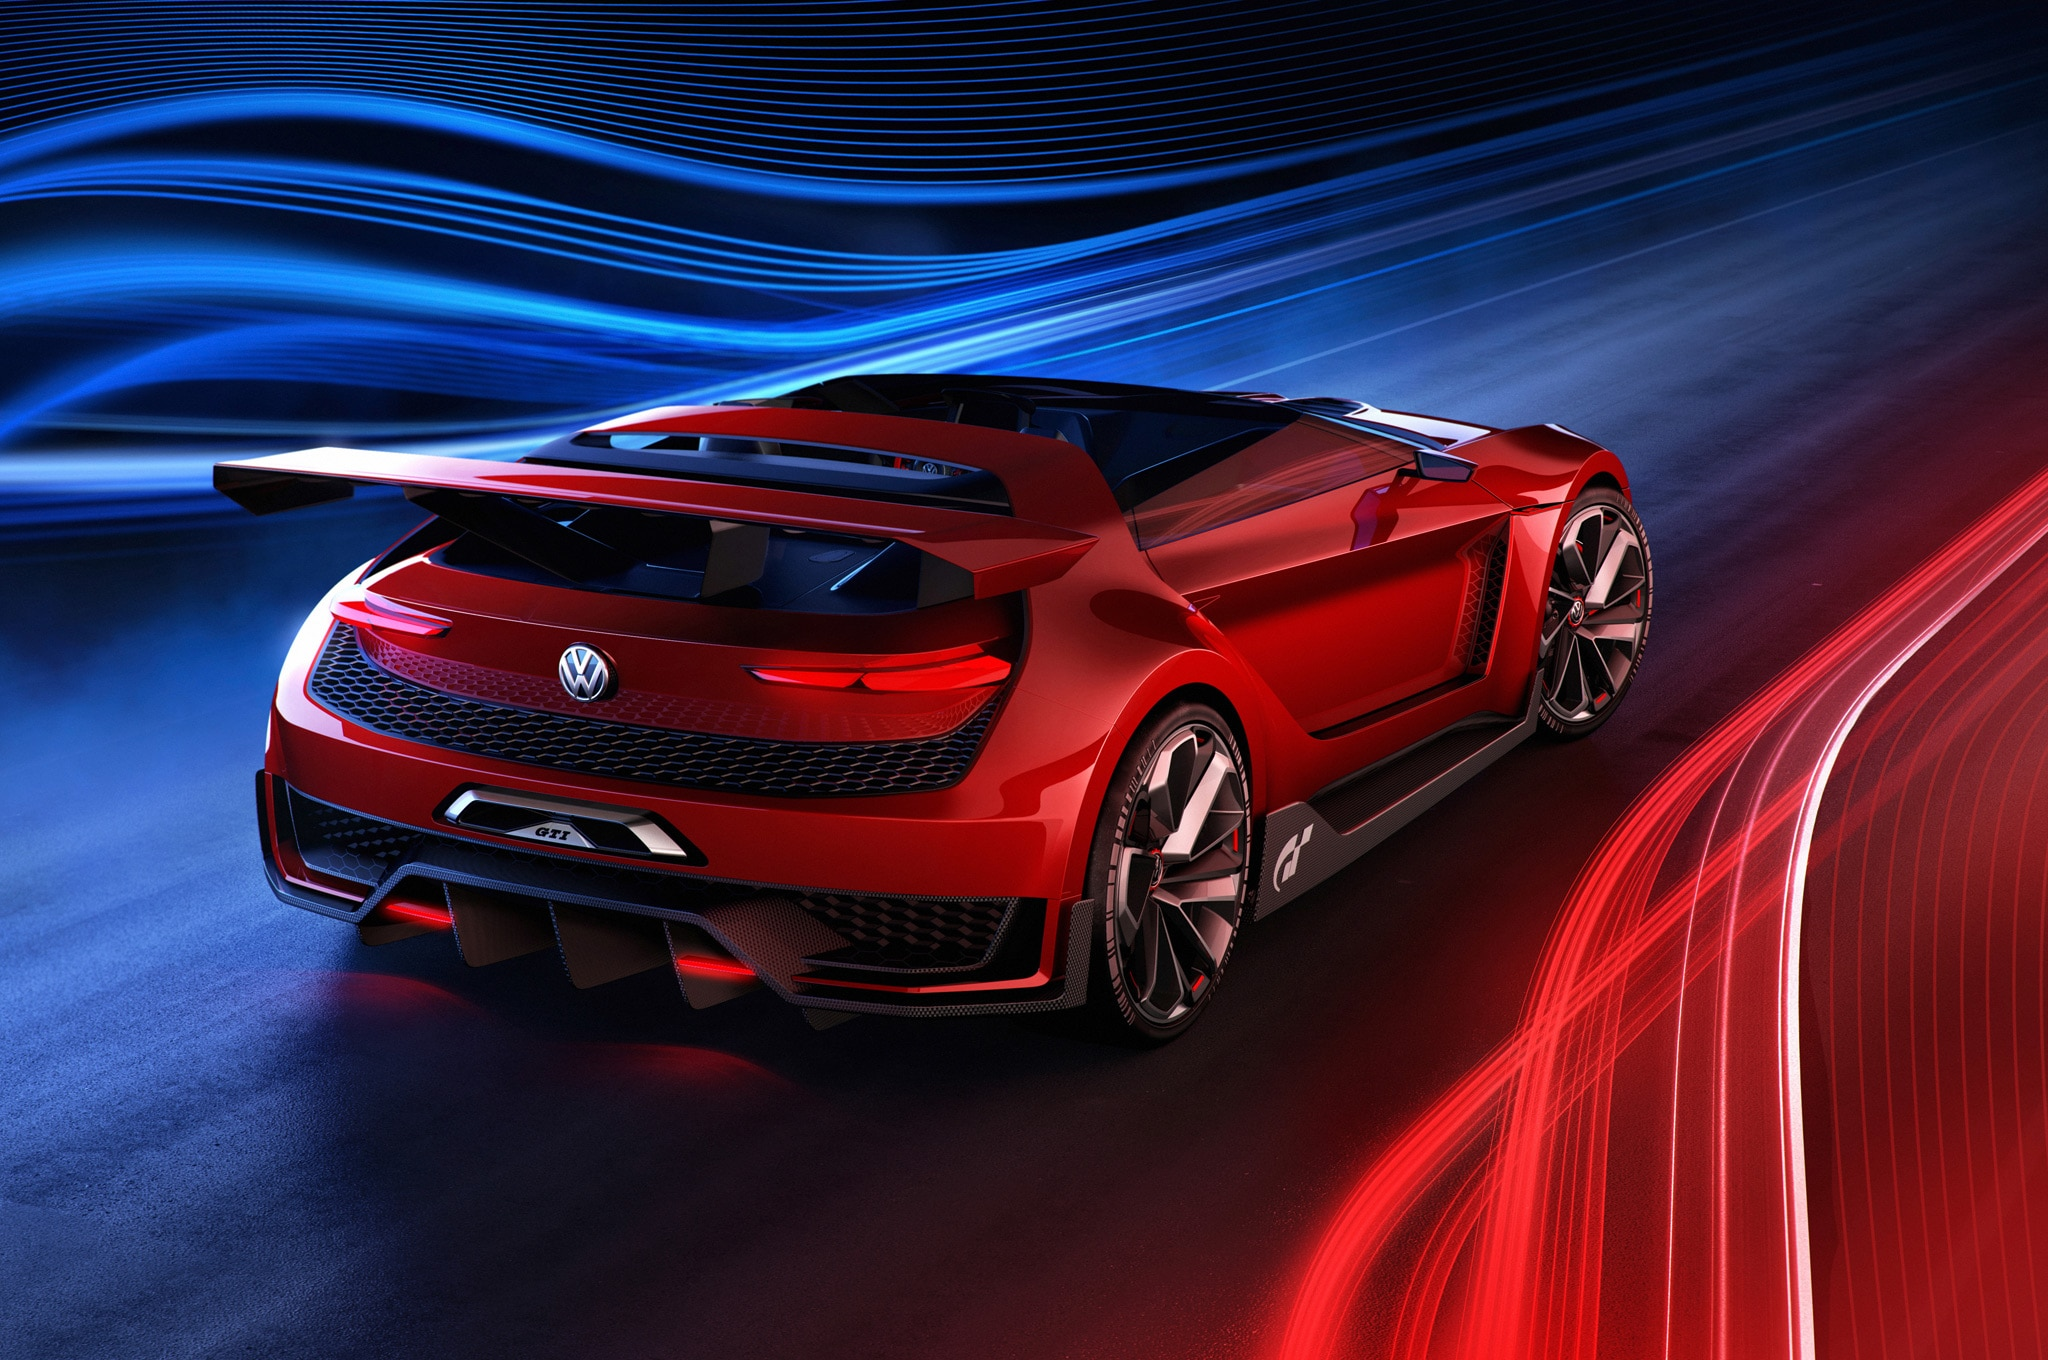 Volkswagen GTI Roadster Vision Gran Turismo Rear Side View1